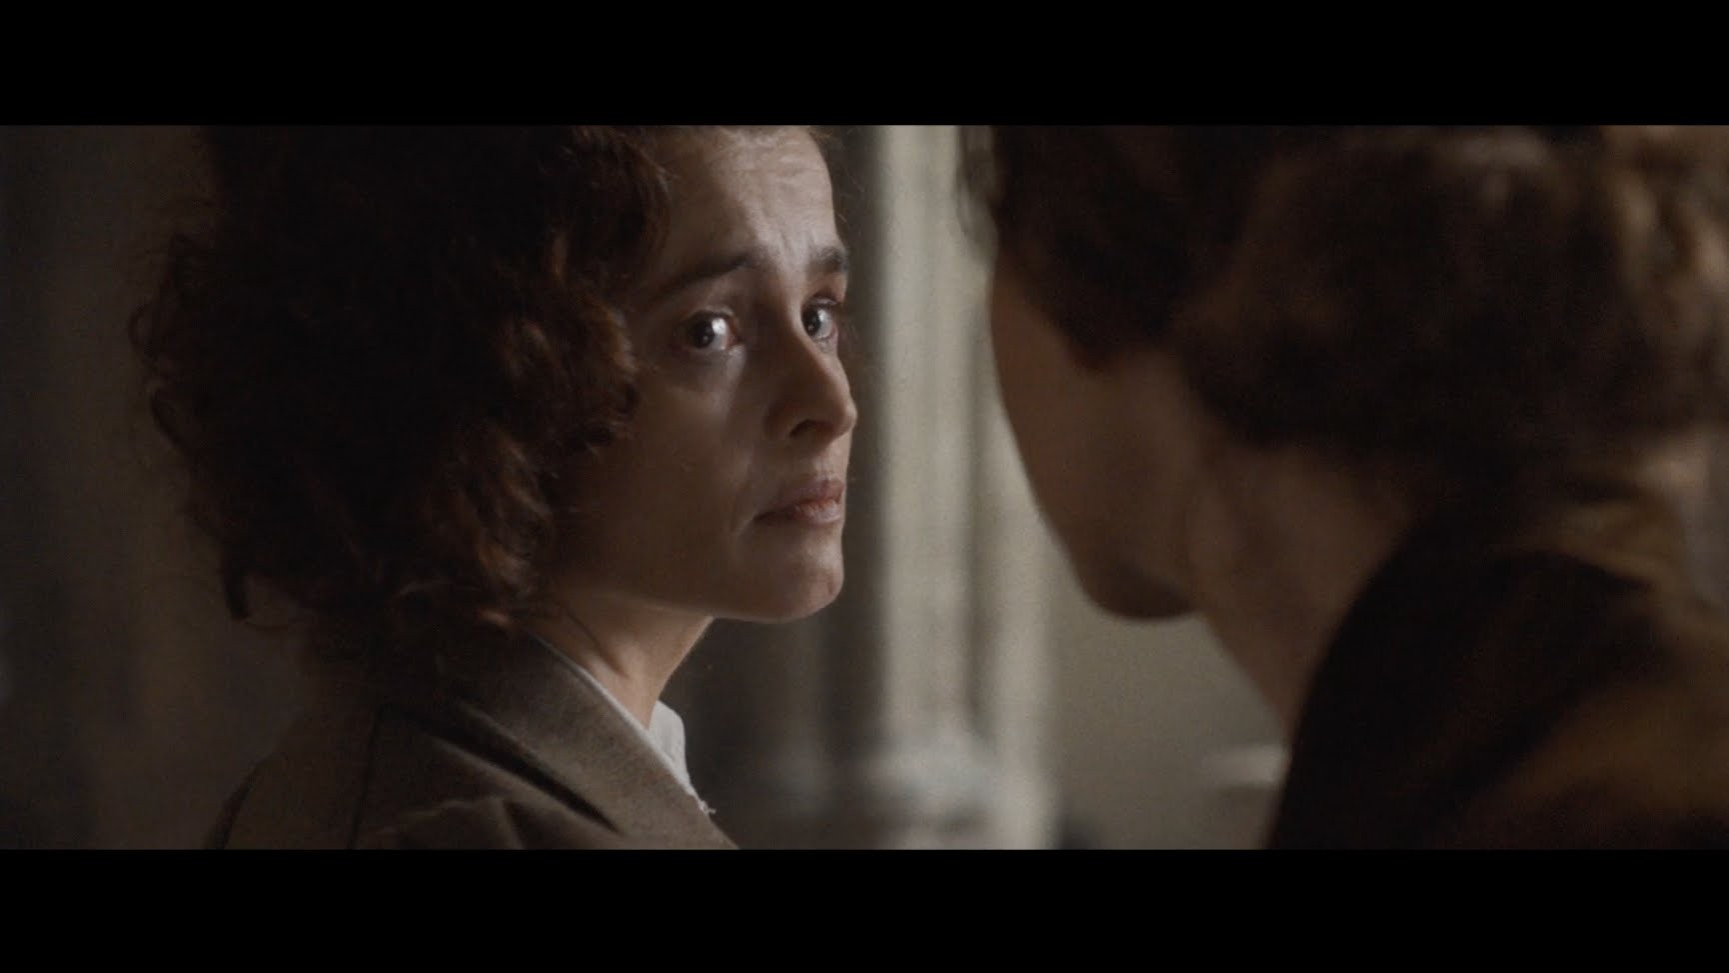 SUFFRAGETTE – 'Life' – In Theaters October 23